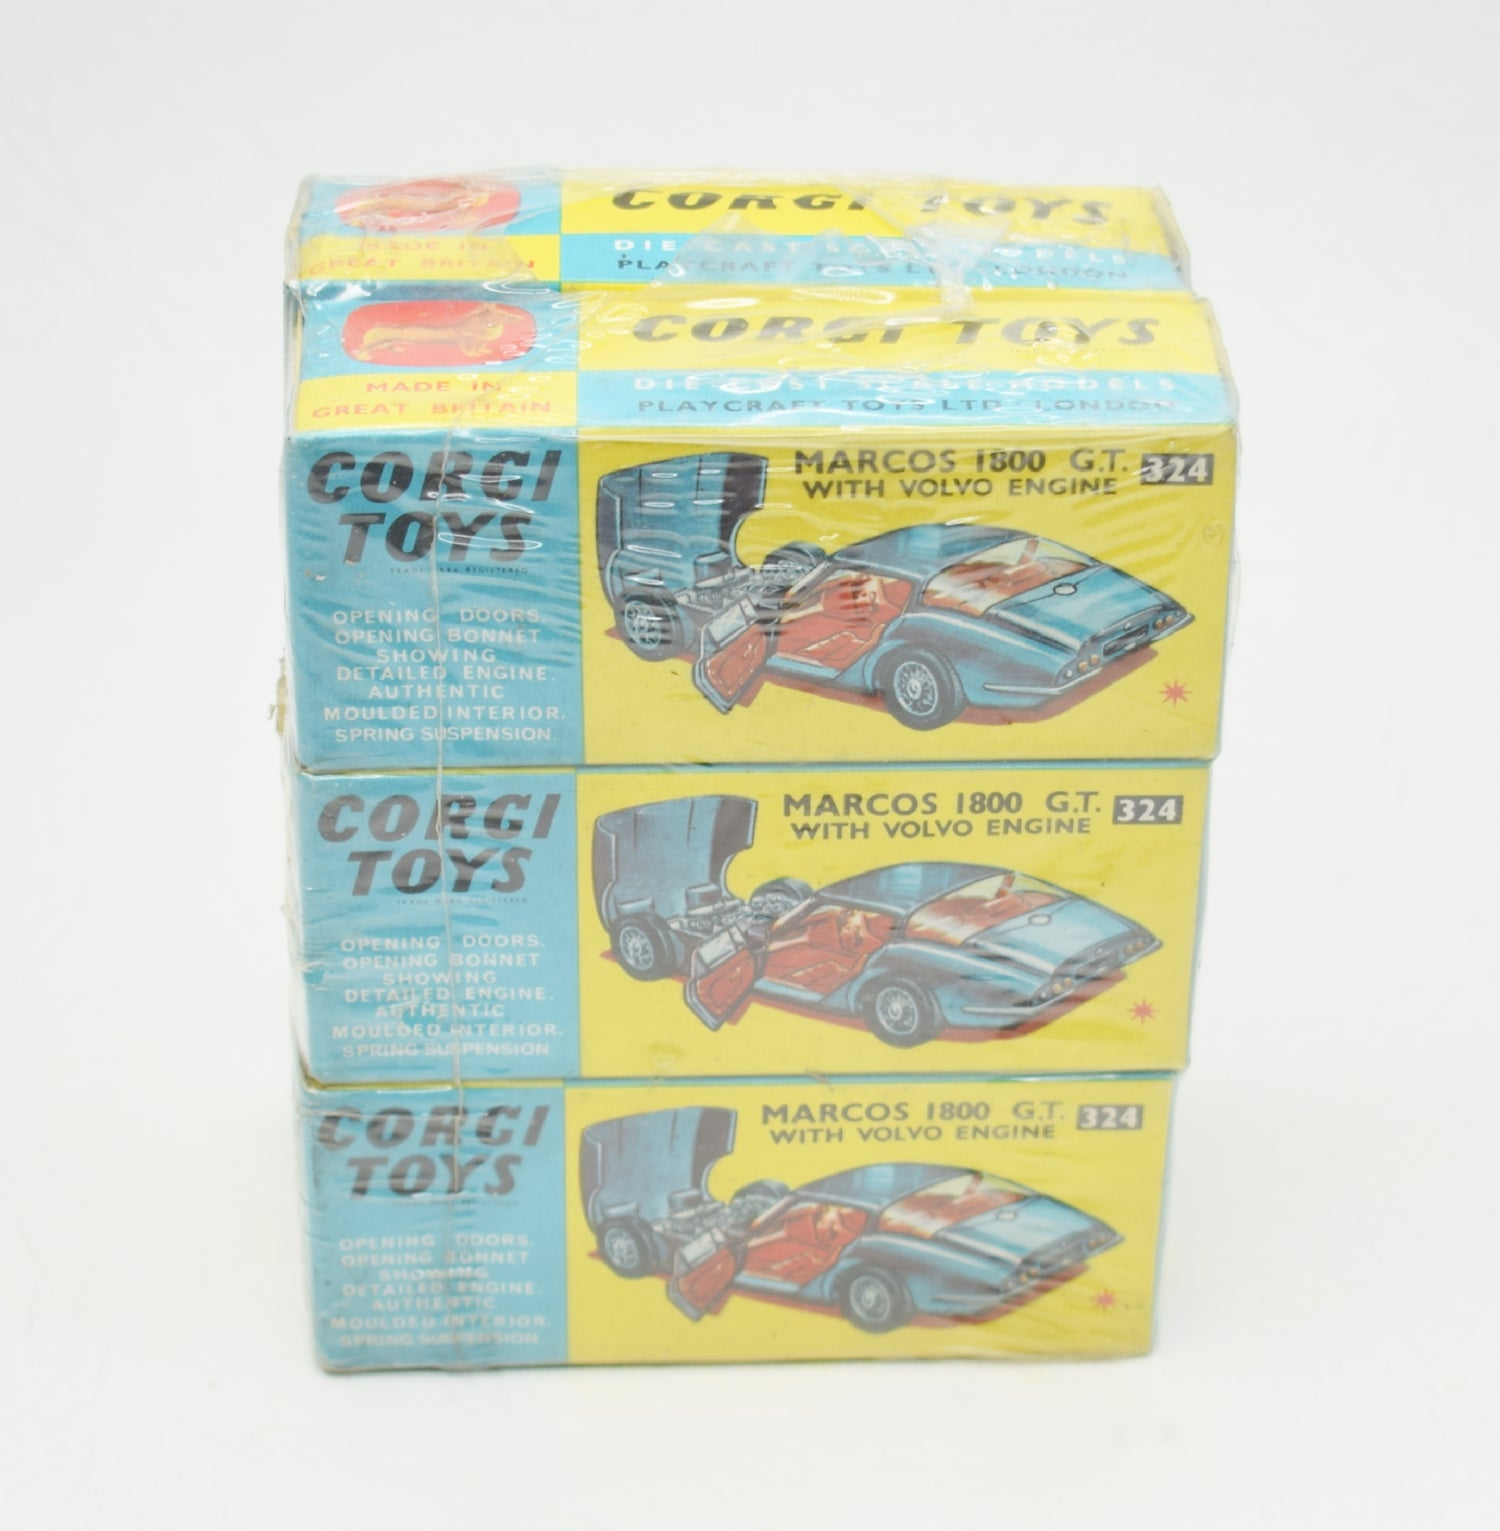 Corgi toys 324 Marcos 1800 Trade wrap of 6 (Old Shop Stock from Ripon North Yorkshire)